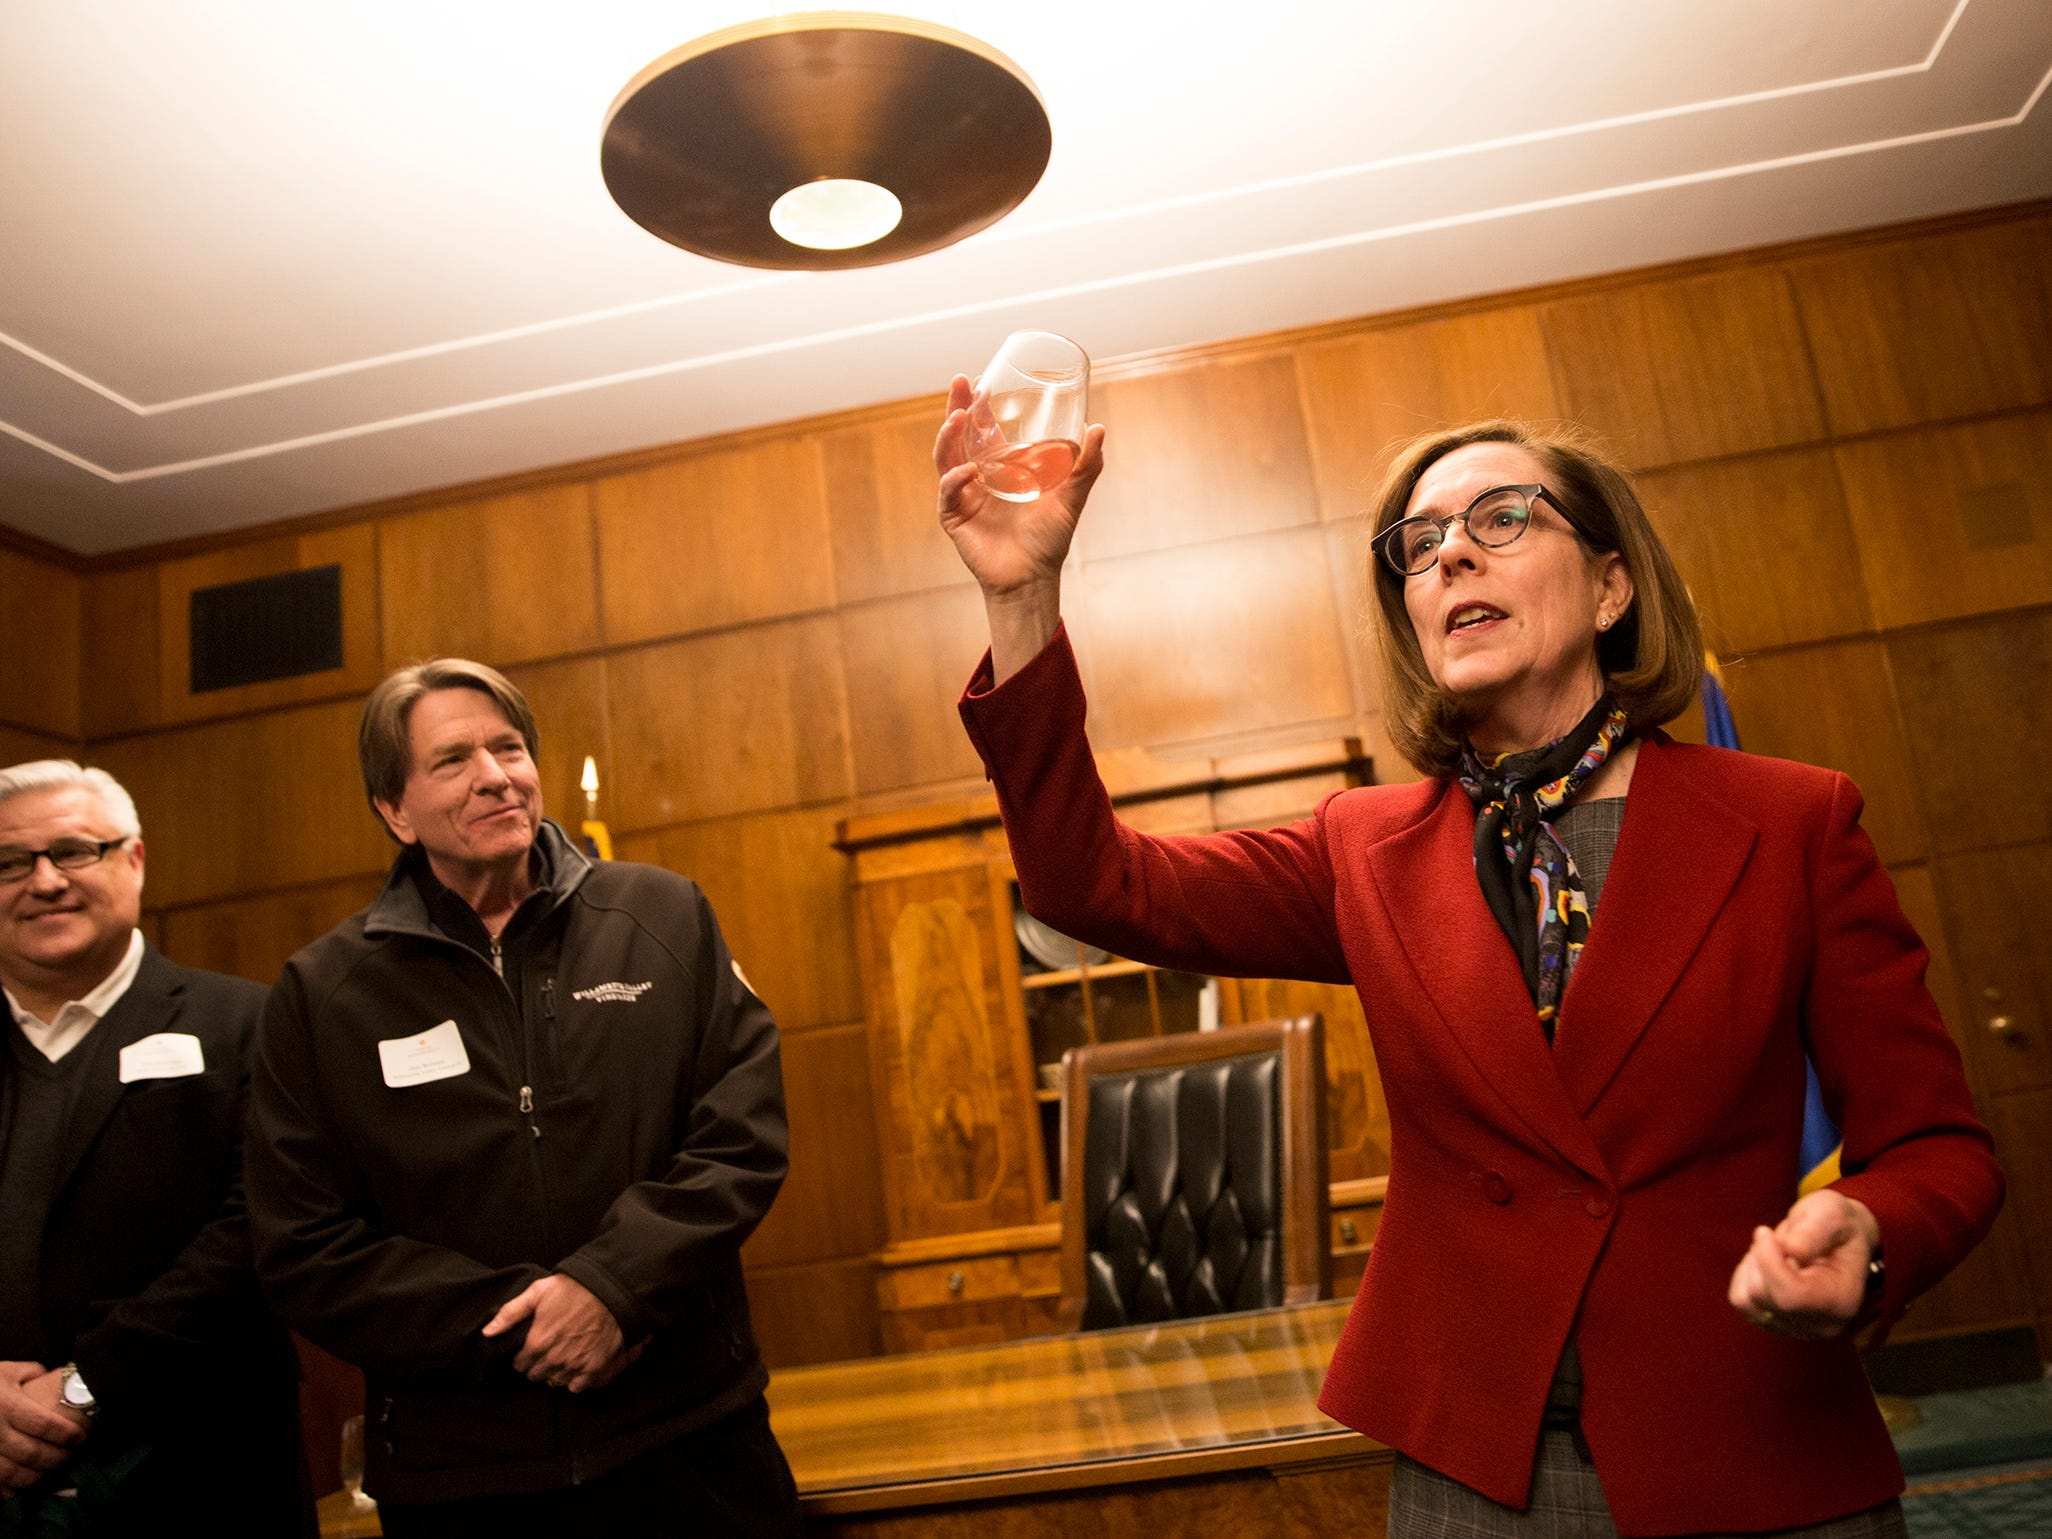 Gov. Kate Brown gives a toast at a release party for the Oregon Solidarity Rose of Pinot Noir as Willamette Valley Vineyard founder and president Jim Bernau and Tim Jennings, of Roth's Fresh Markets look on in the Governor's ceremonial office at the Oregon State Capitol in Salem on Tuesday, March 5, 2019.